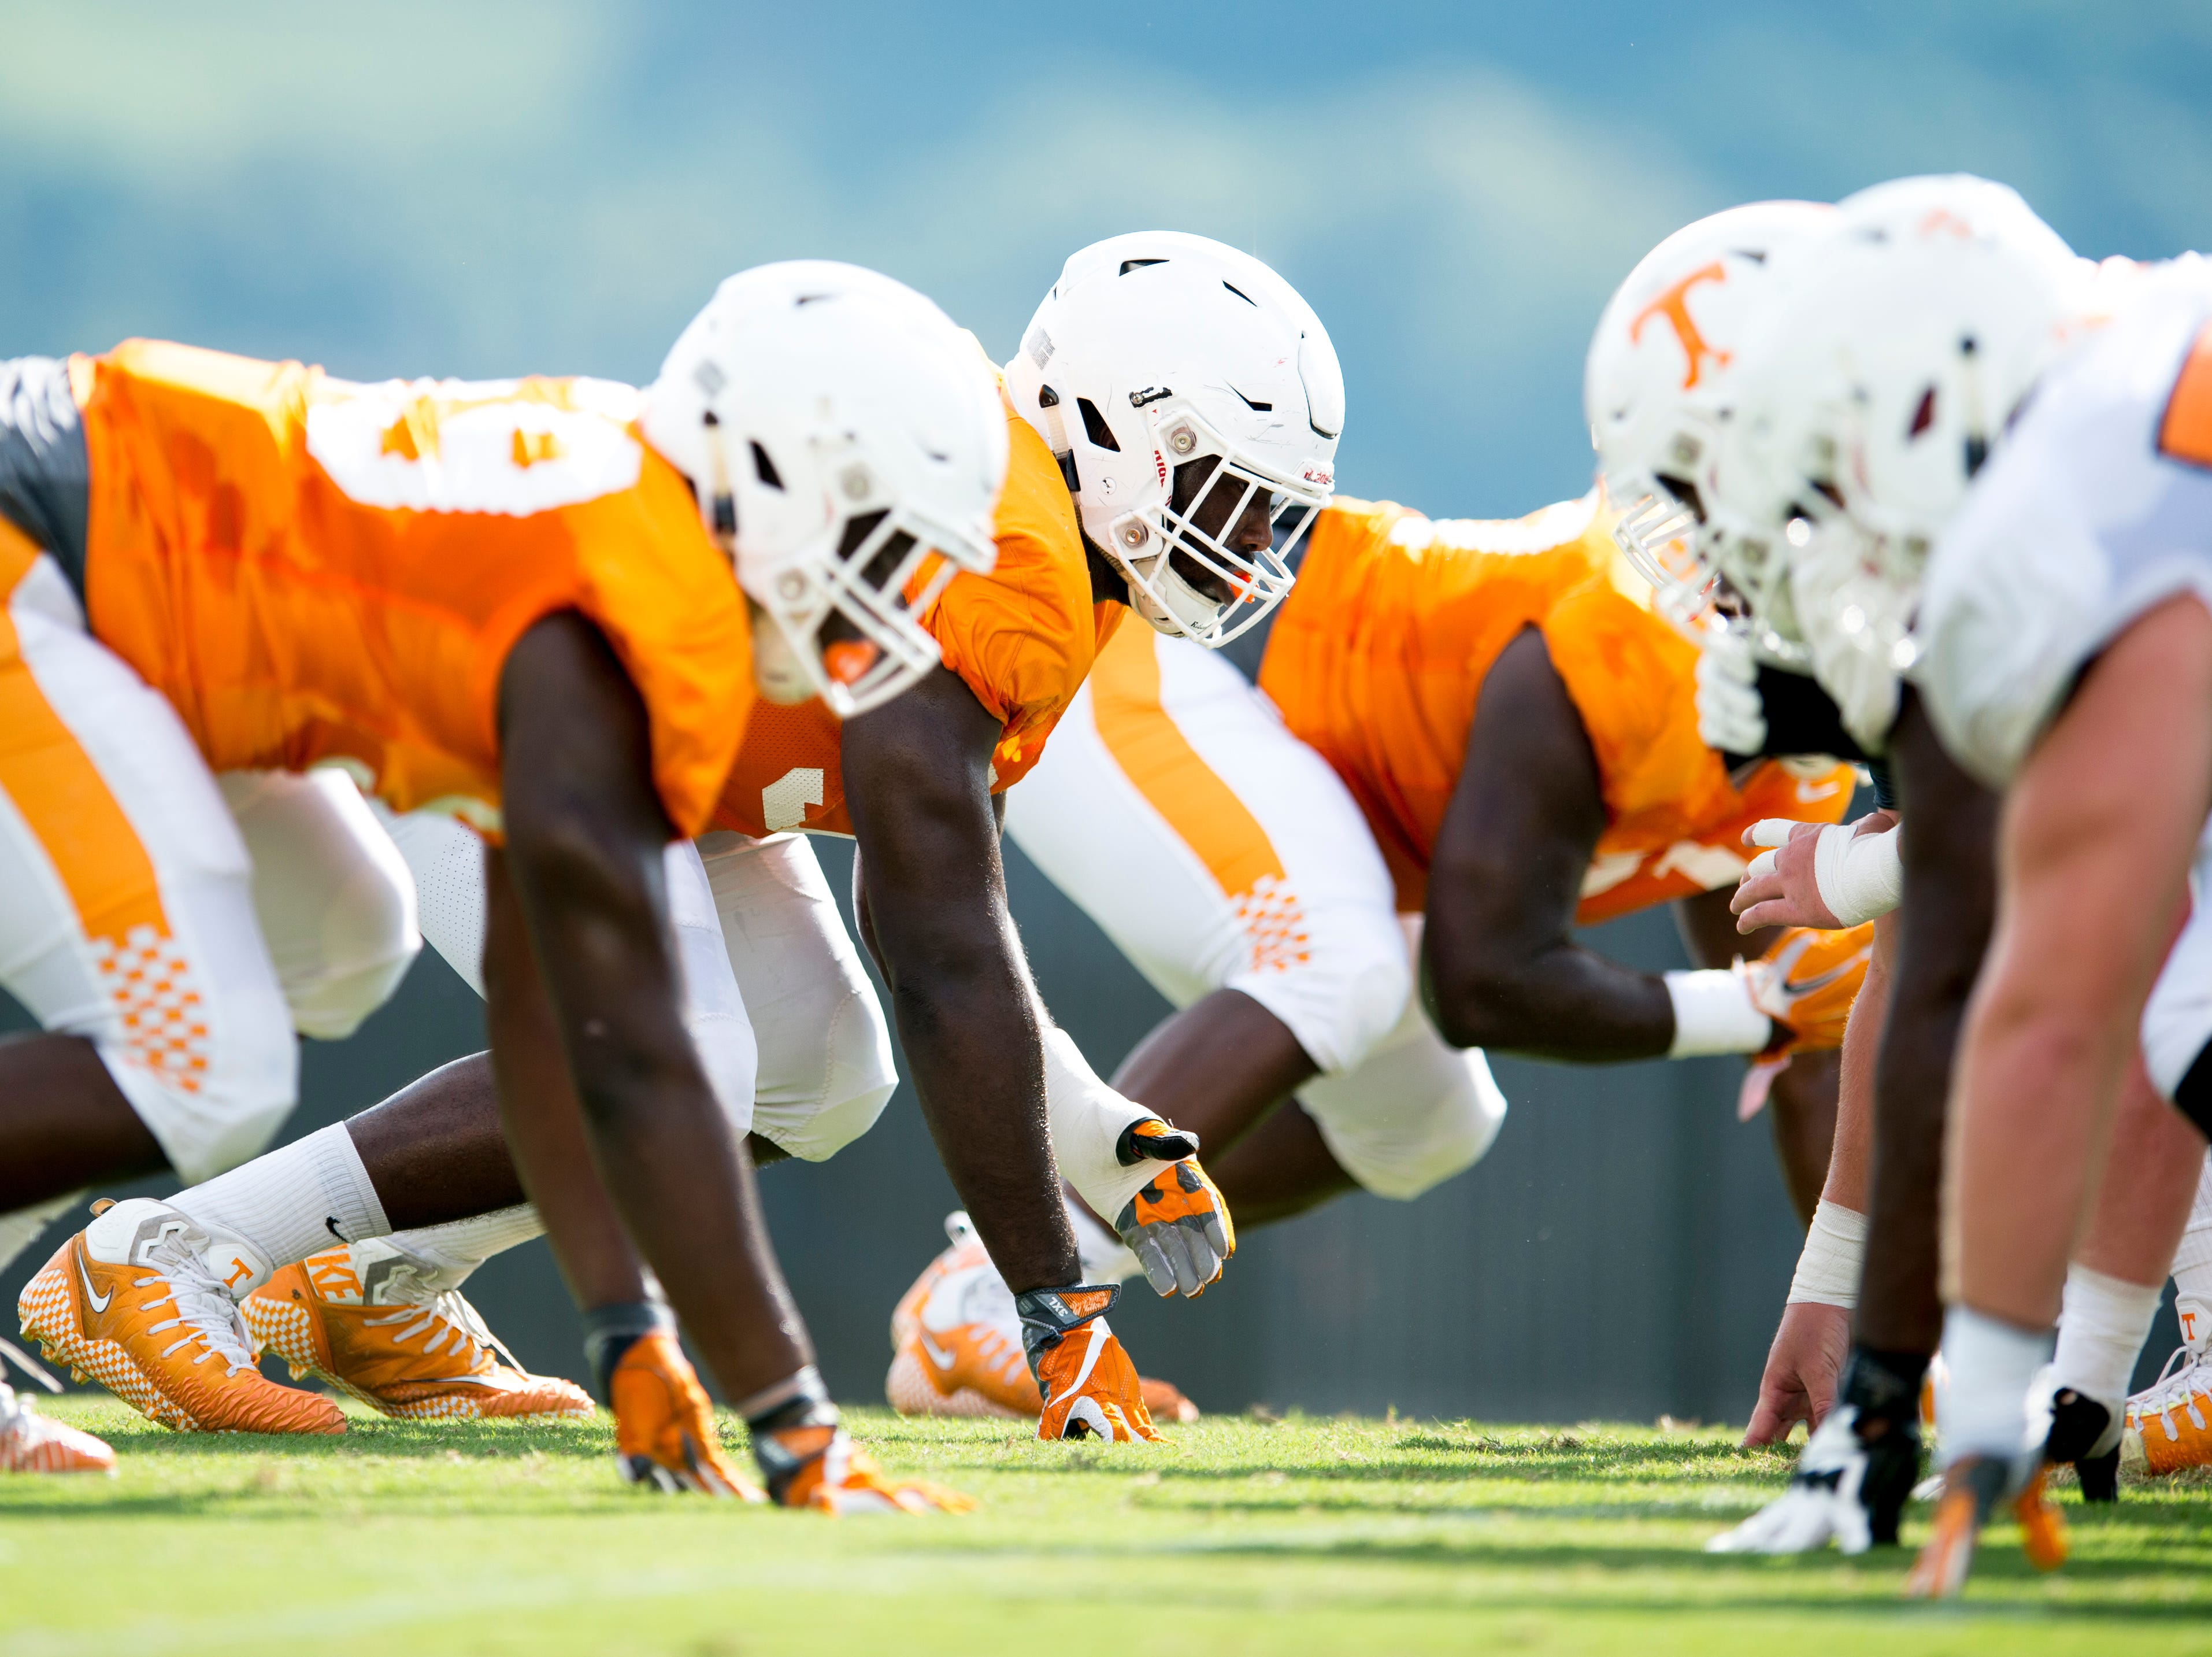 Players line up for a drill during Tennessee fall football practice at Haslam Field in Knoxville, Tennessee on Wednesday, September 12, 2018.